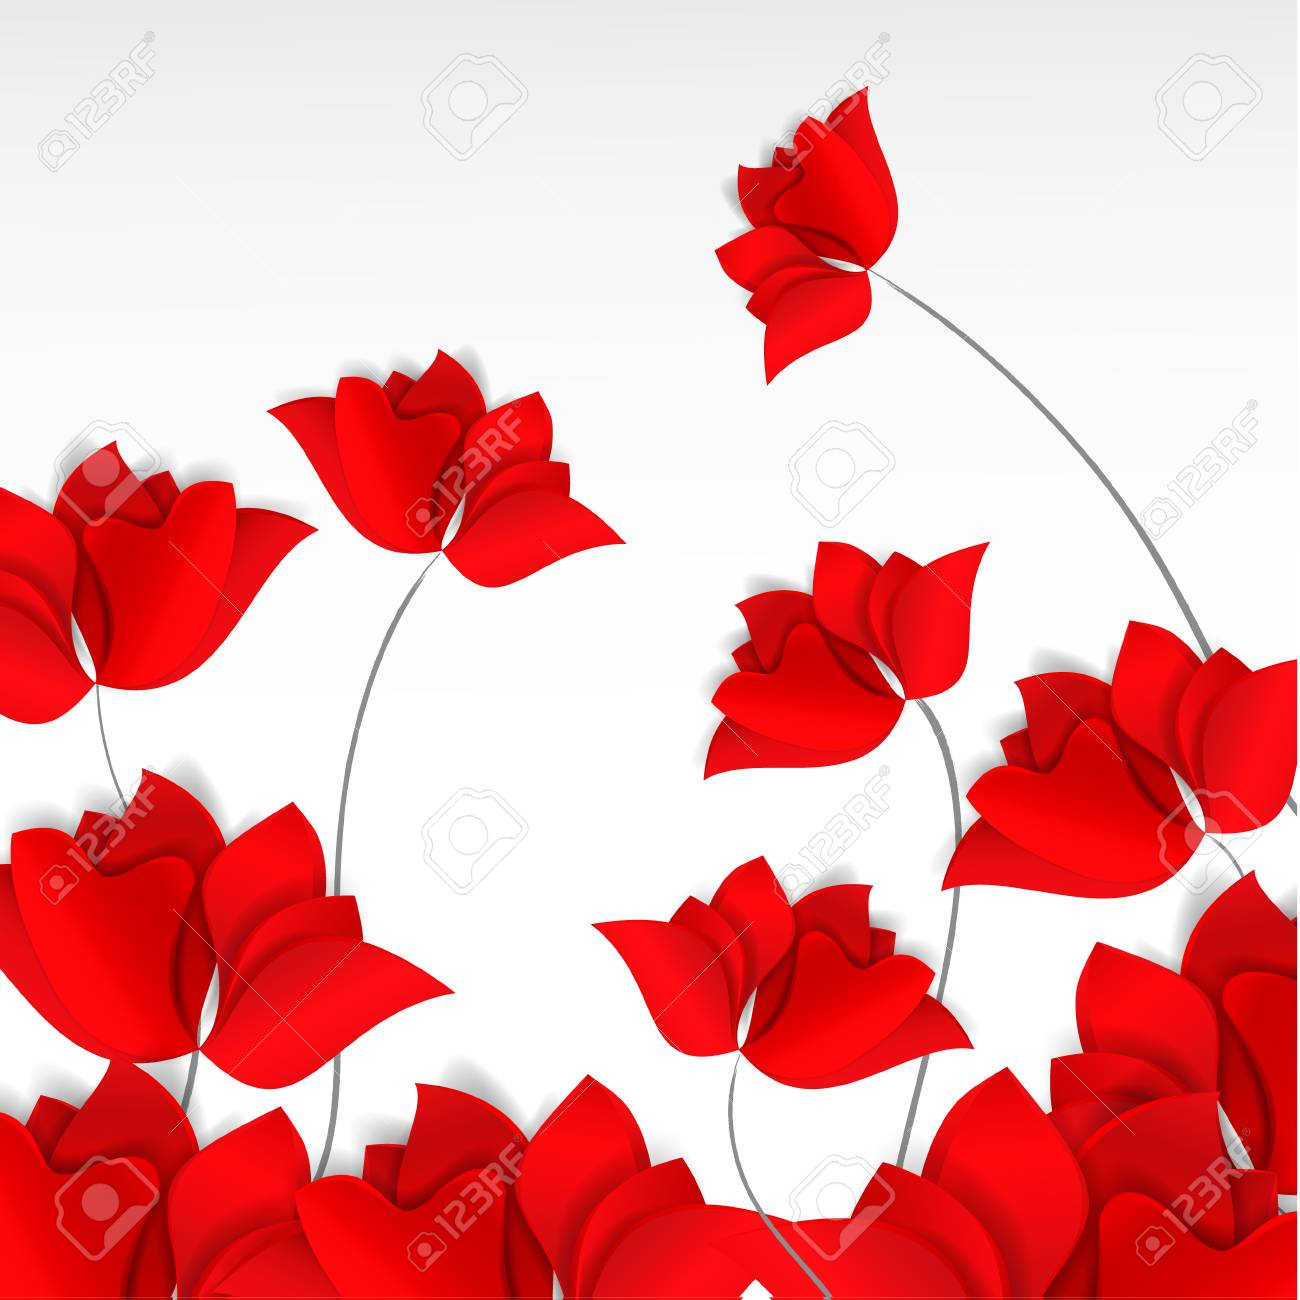 Bright paper,cut style red flowers field on white background